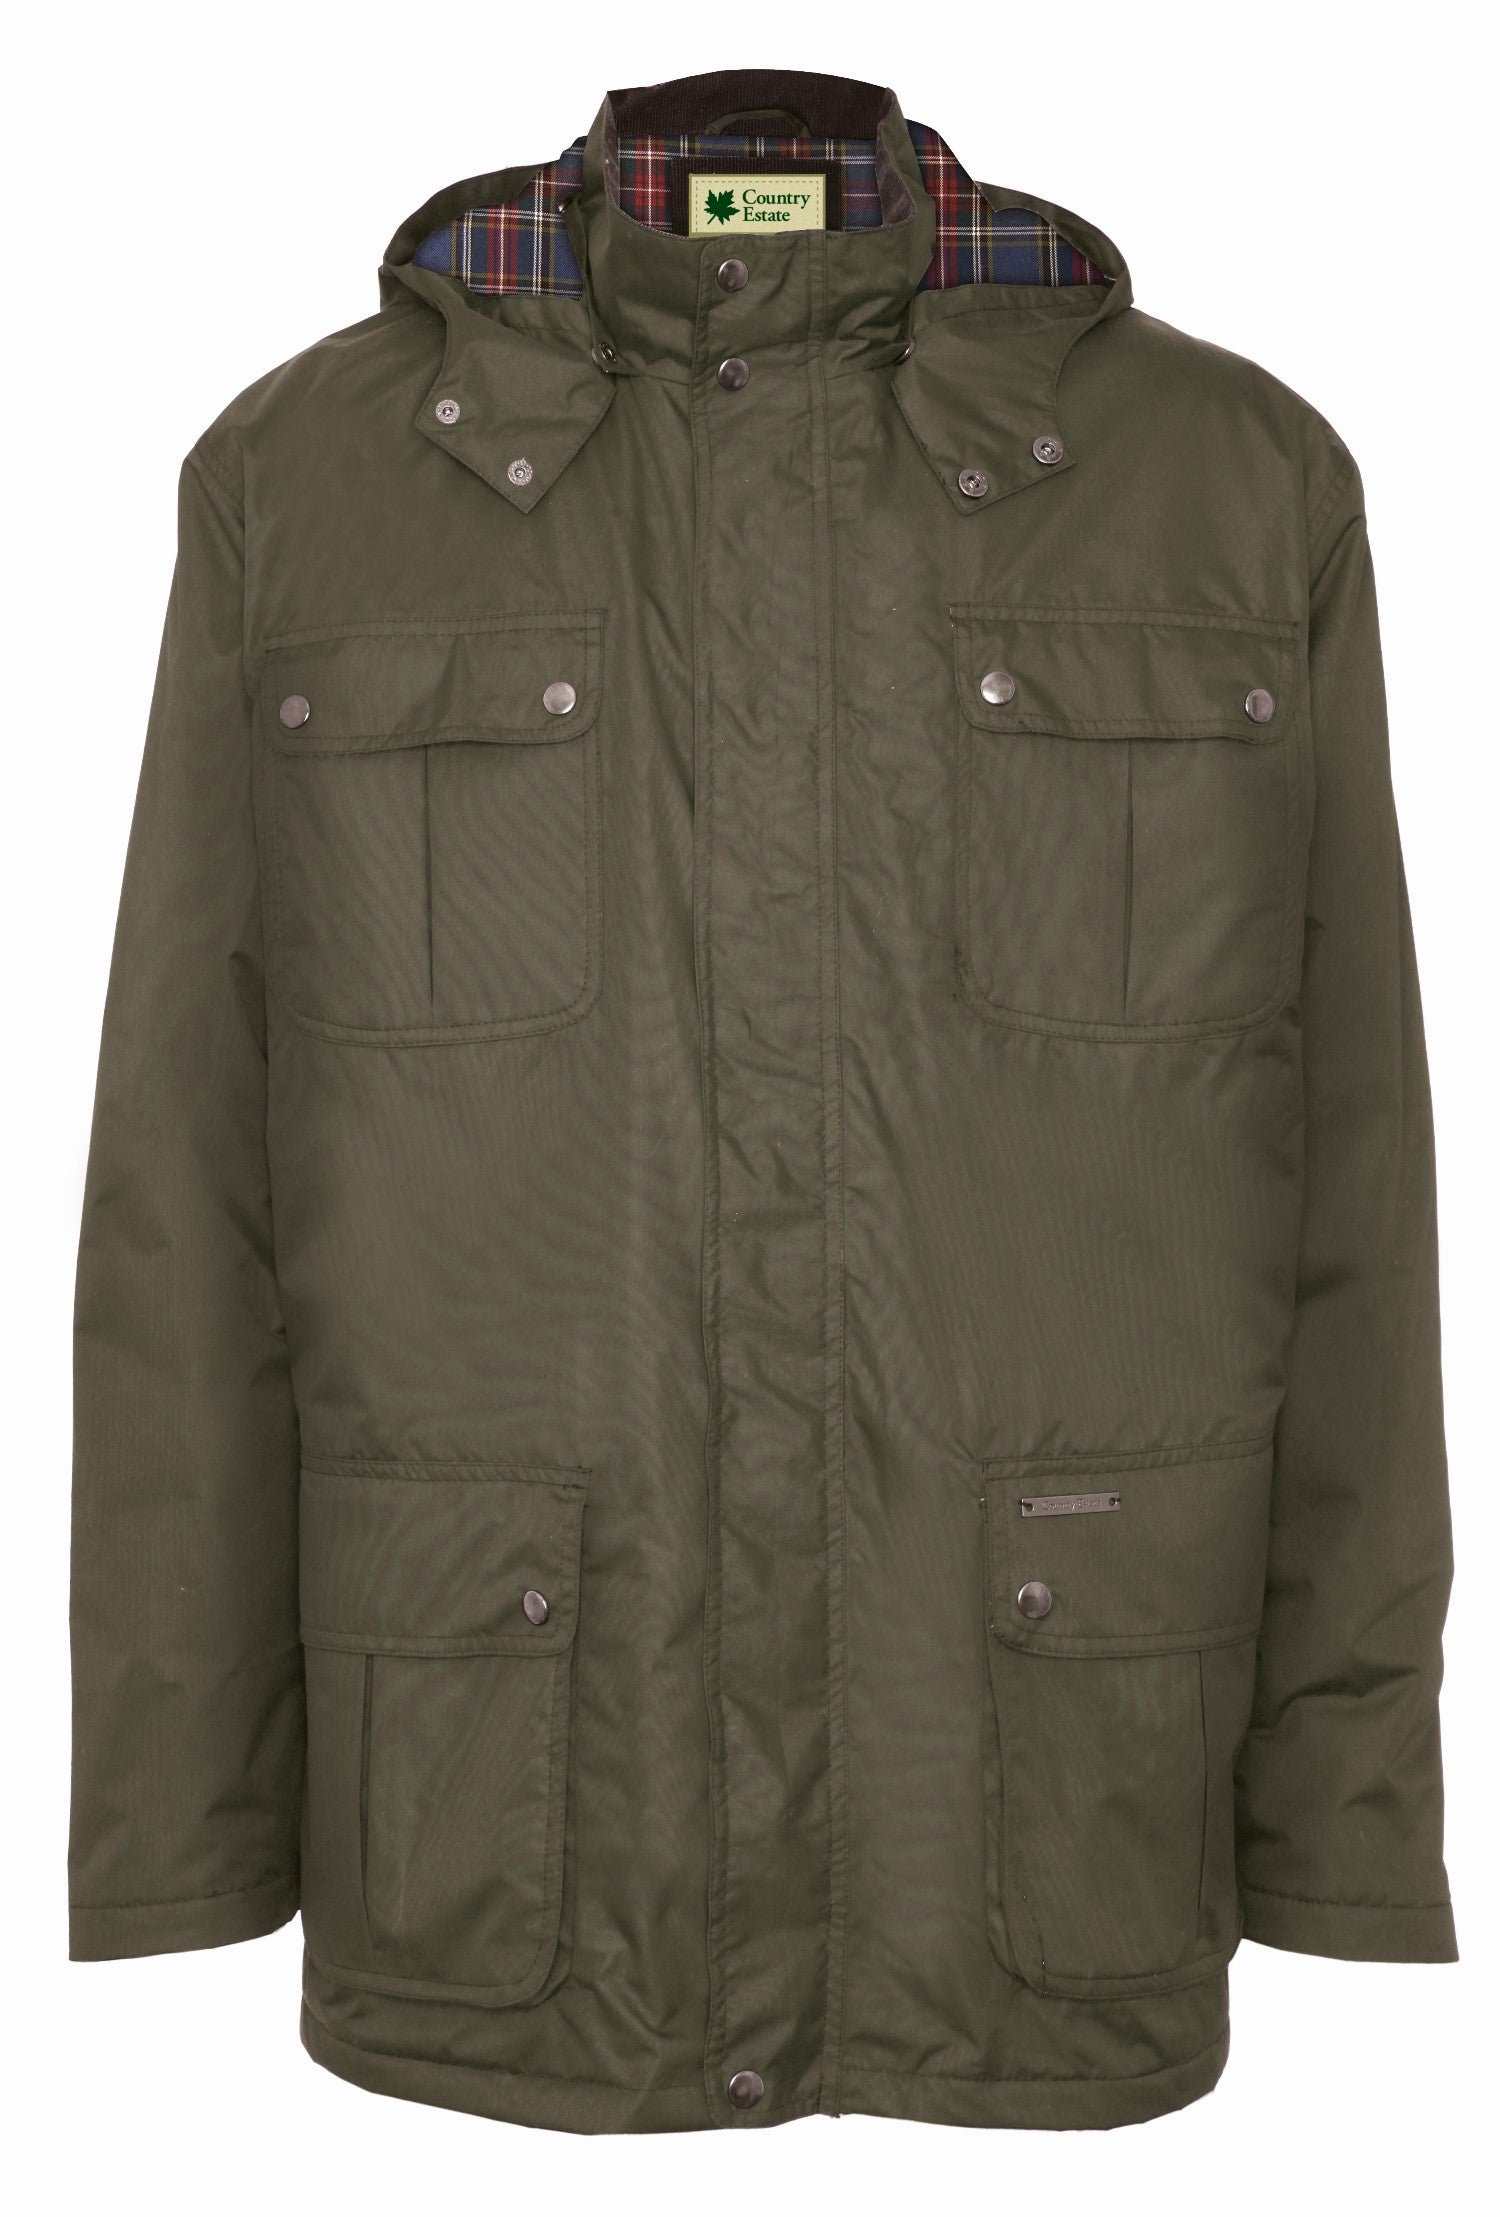 Champion Balmoral Waterproof Jacket | Olive